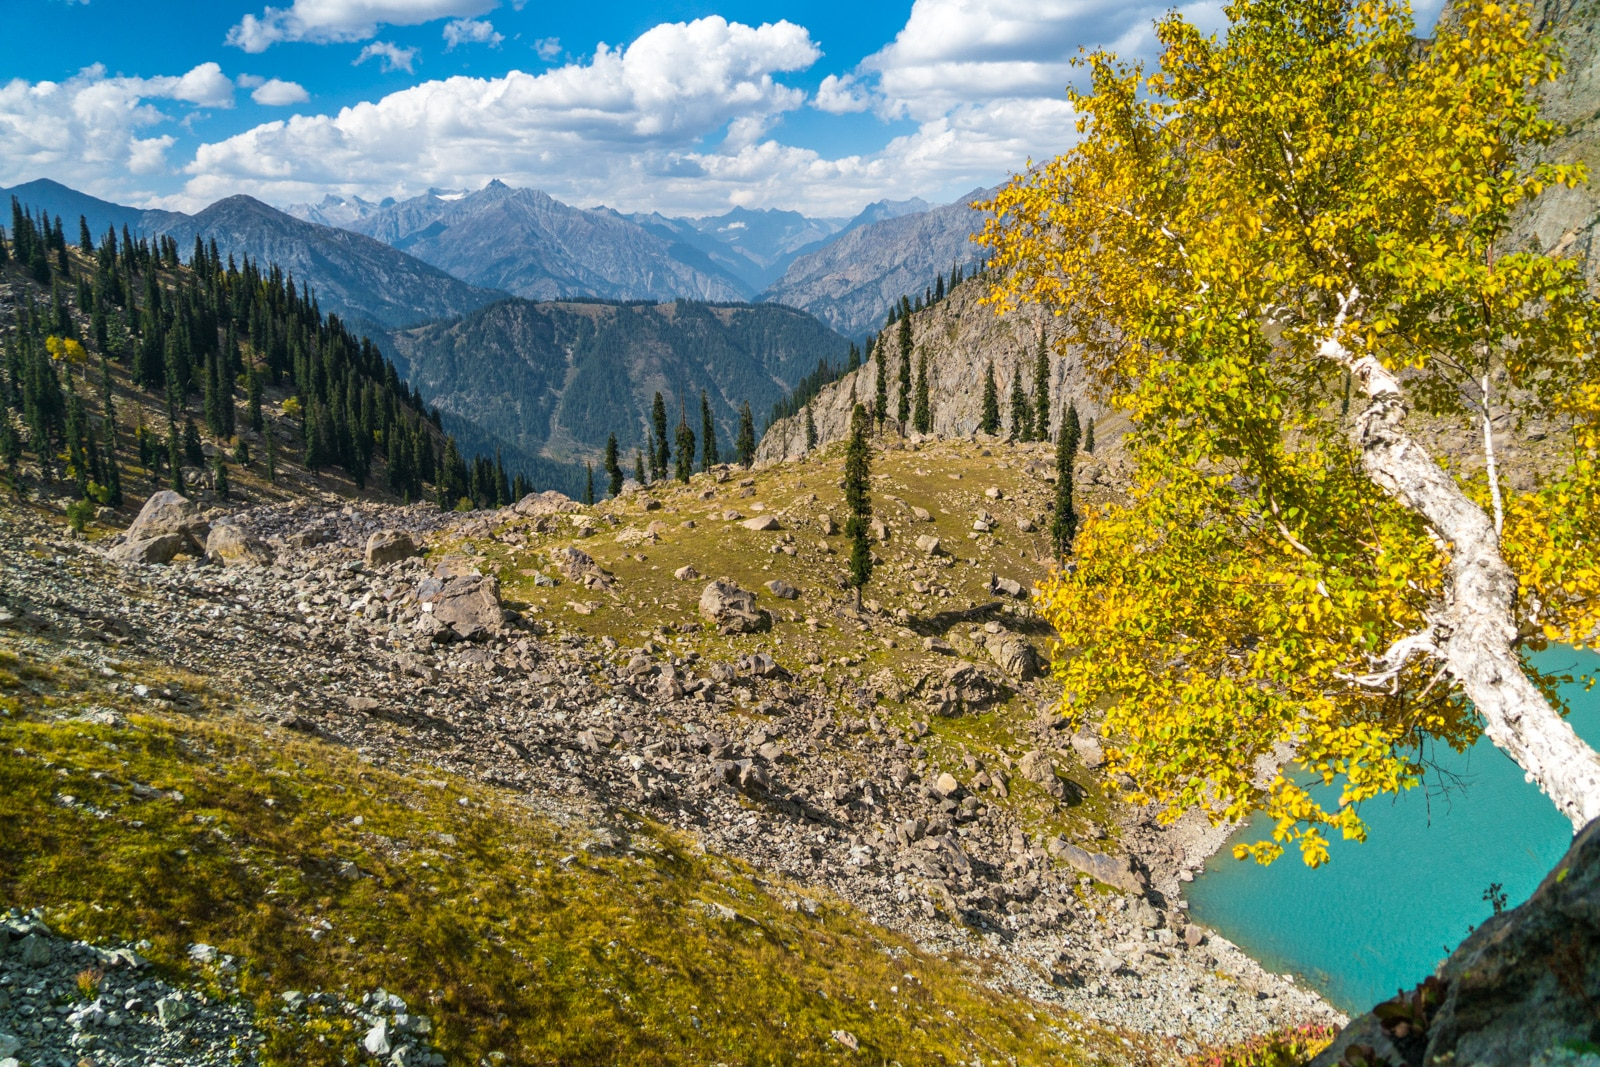 Day trekking in Kalam, Swat Valley, Pakistan - Valley view from Spinkhor Lake - Lost With Purpose travel blog